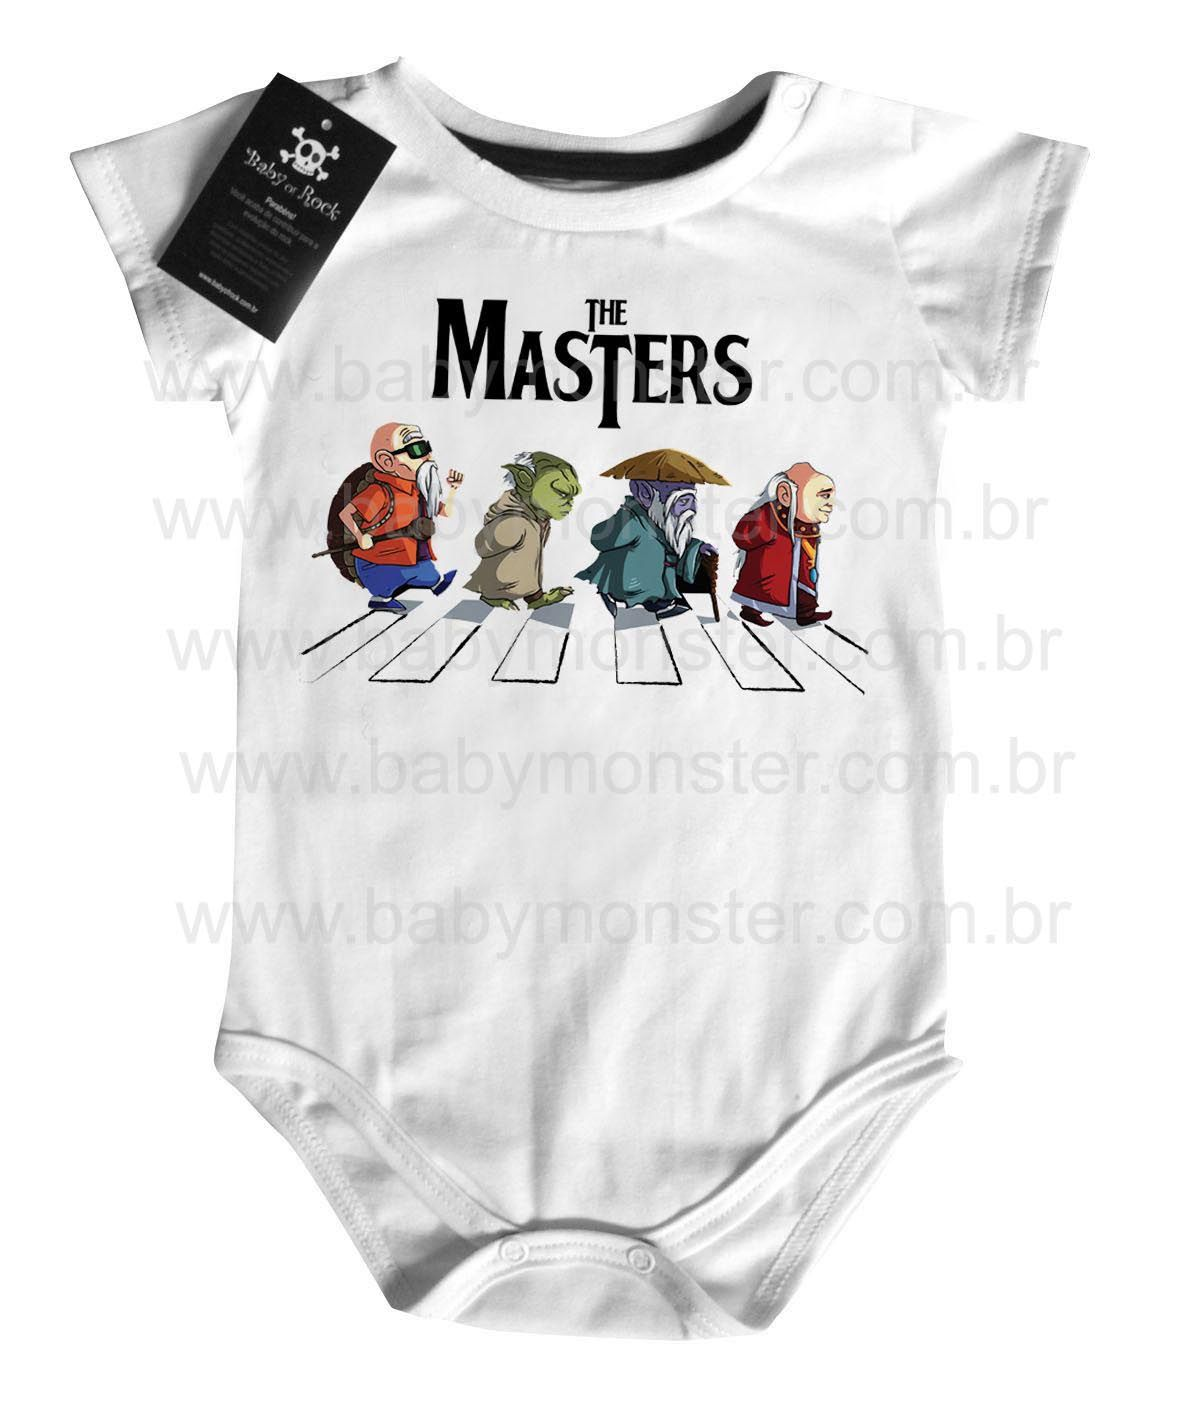 Body  Nerd / Geek  Bebe The Masters - White  - Baby Monster S/A